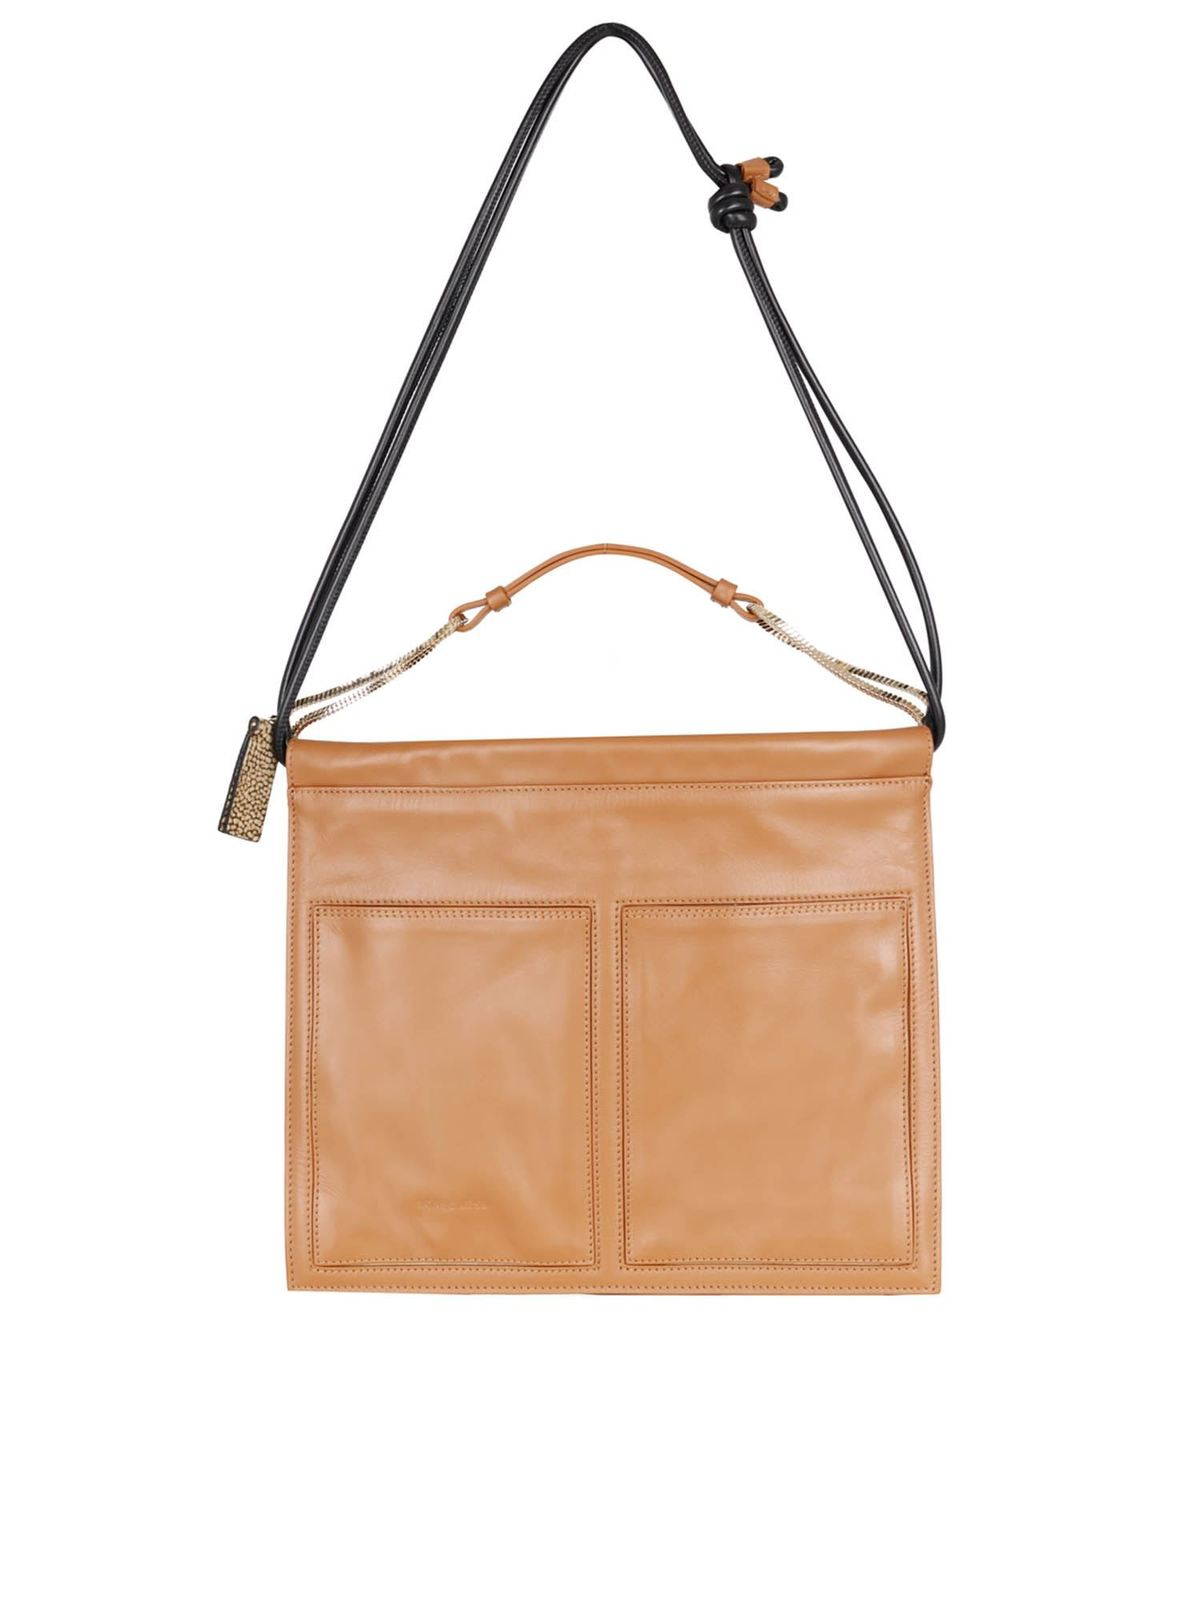 Borbonese CENTERFOLD MEDIUM BAG IN BROWN